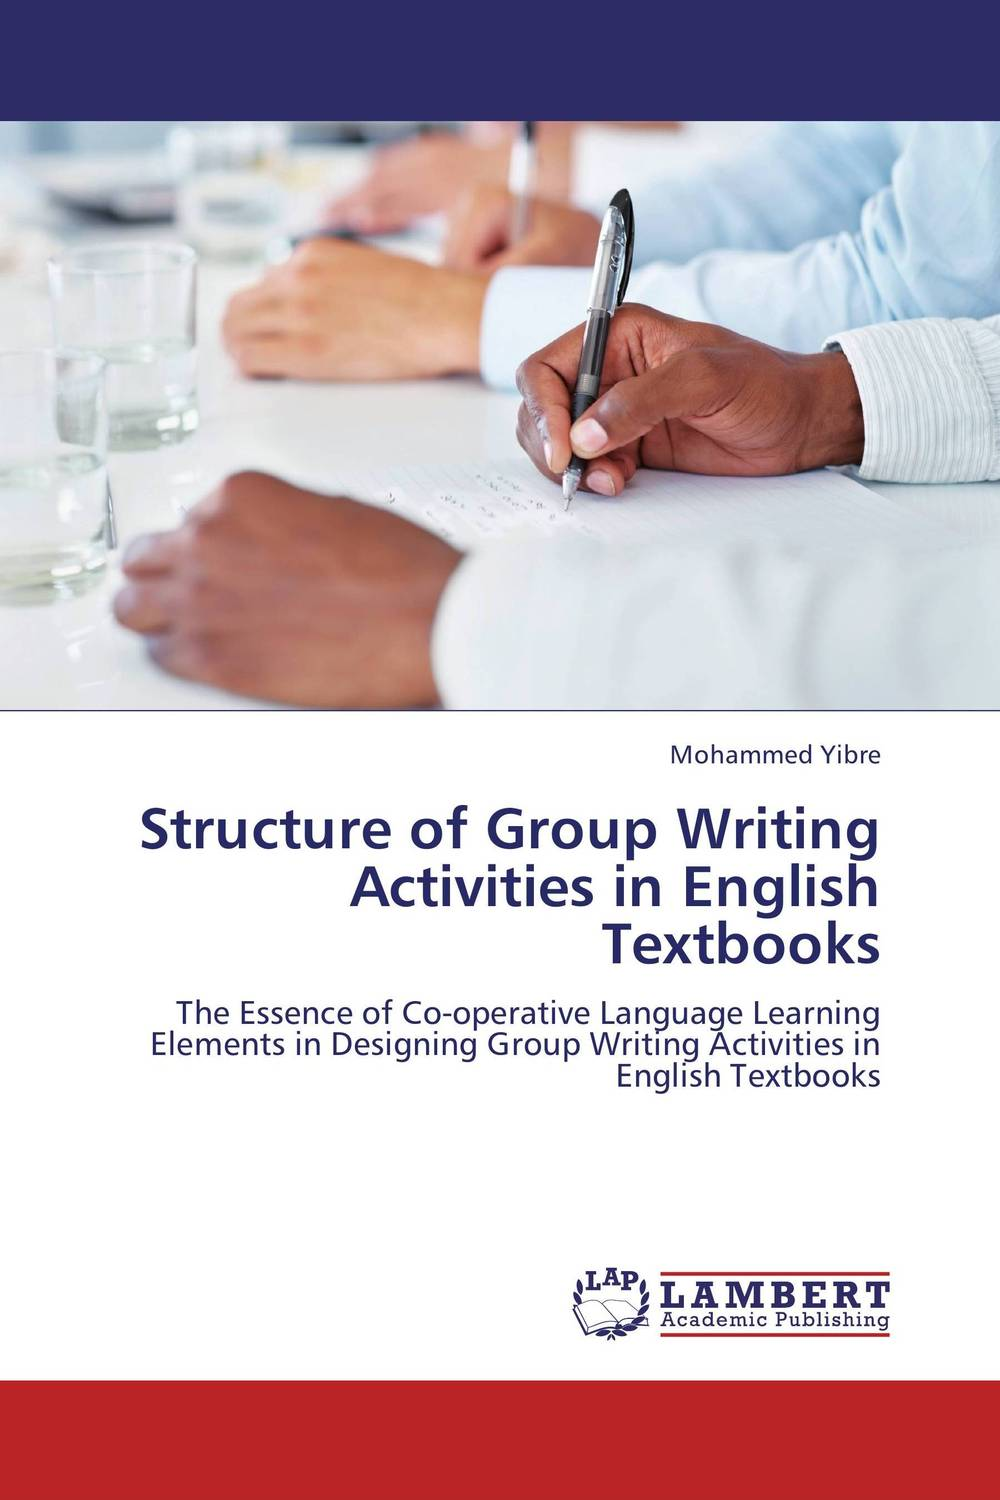 Structure of Group Writing Activities in English Textbooks